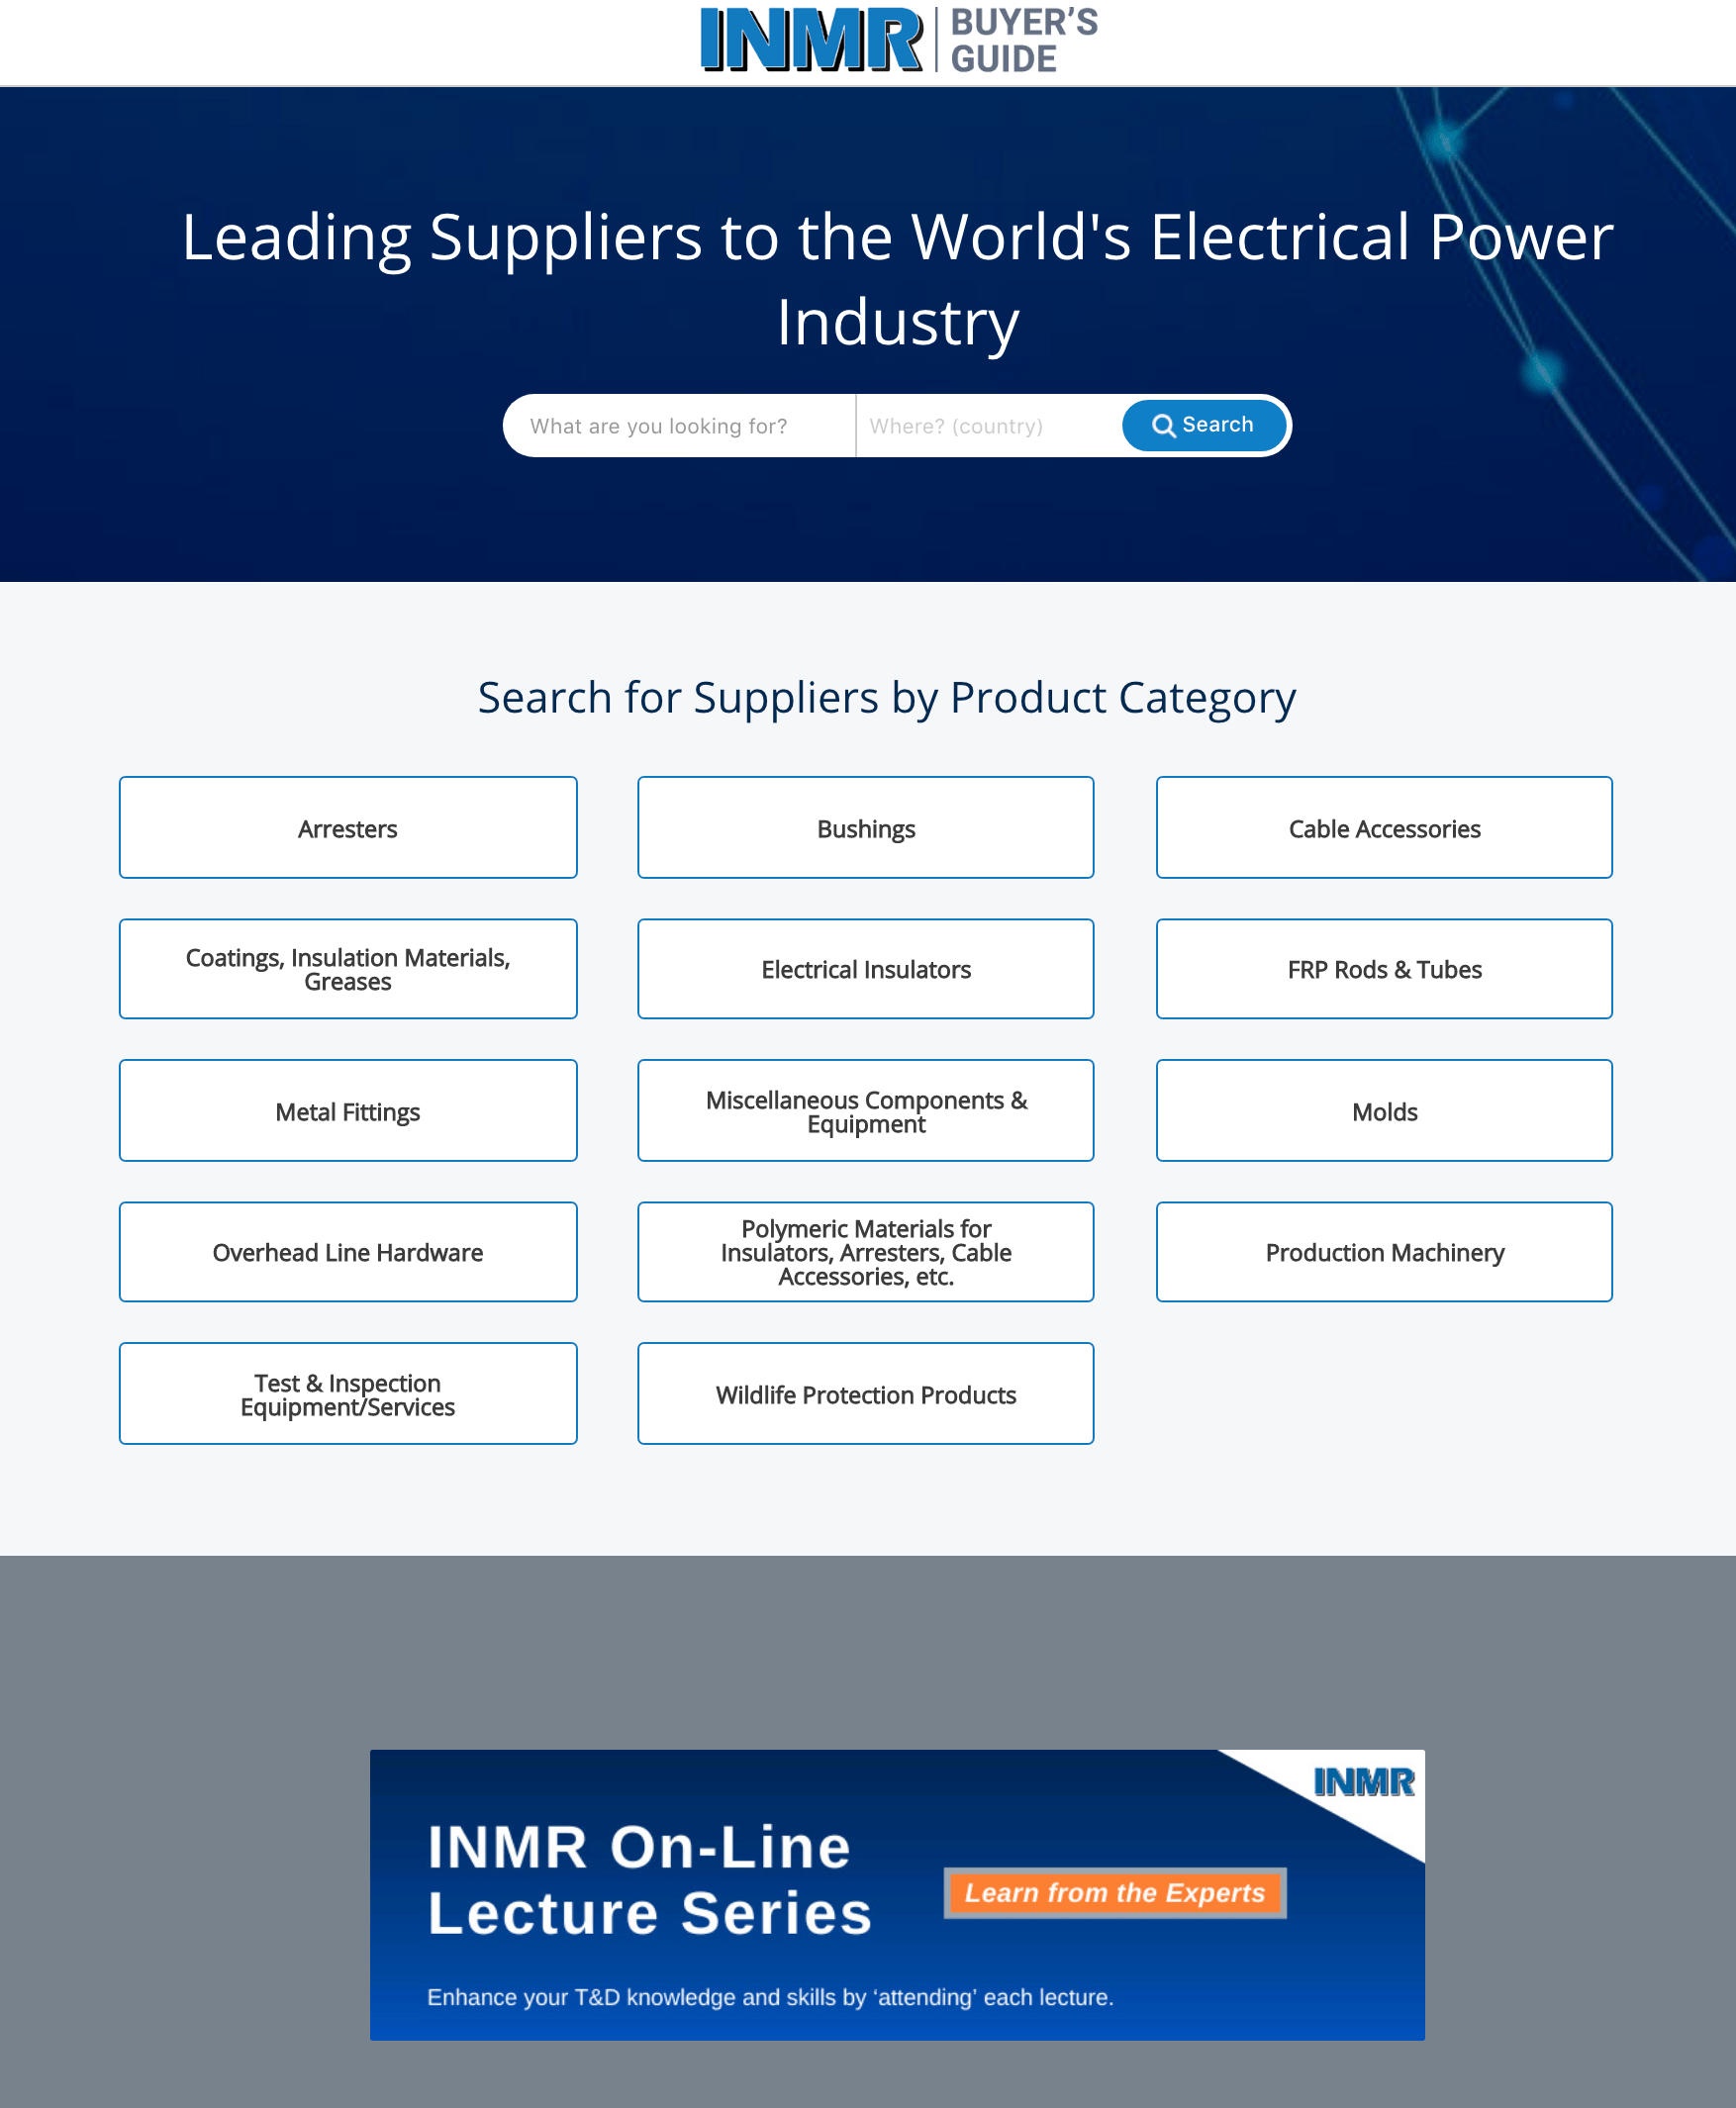 www.INMRBUYERSGUIDE.com buyersguide Updated & Re-Designed www.INMRBUYERSGUIDE.com Allows Users of Power System Components to Choose Among Qualified Suppliers INMRBUYERSGUIDE